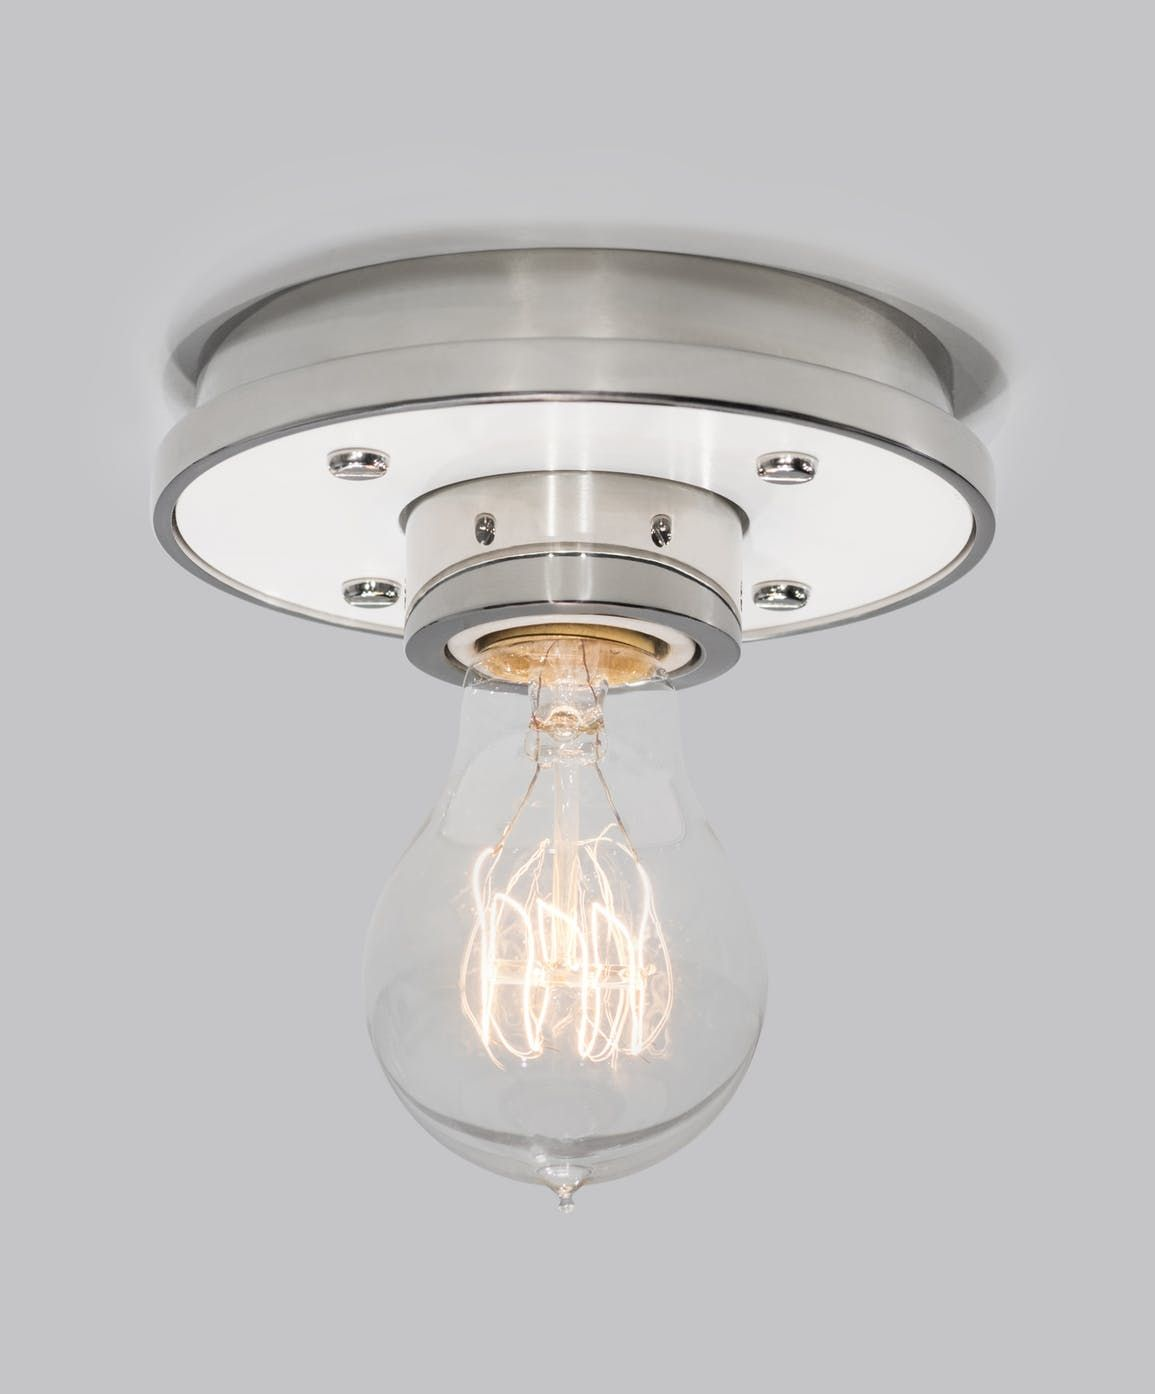 Buy pop round by the urban electric co quick ship designer lighting from dering halls collection of contemporary mid century modern transitional flush